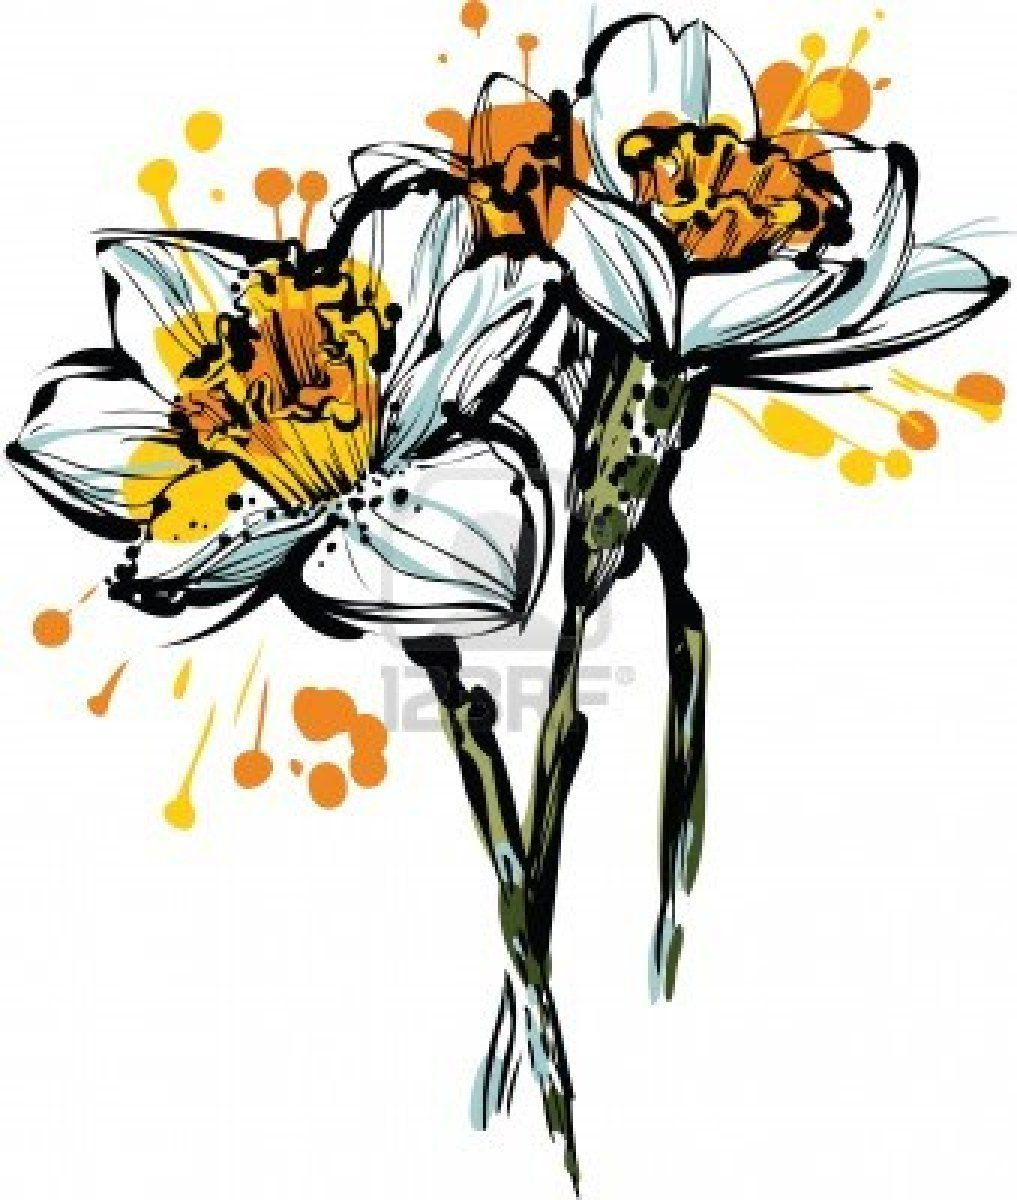 Beautiful Color Picture Three Flowers Of Narcissus Narcissus Flower Tattoos Narcissus Tattoo Birth Flower Tattoos